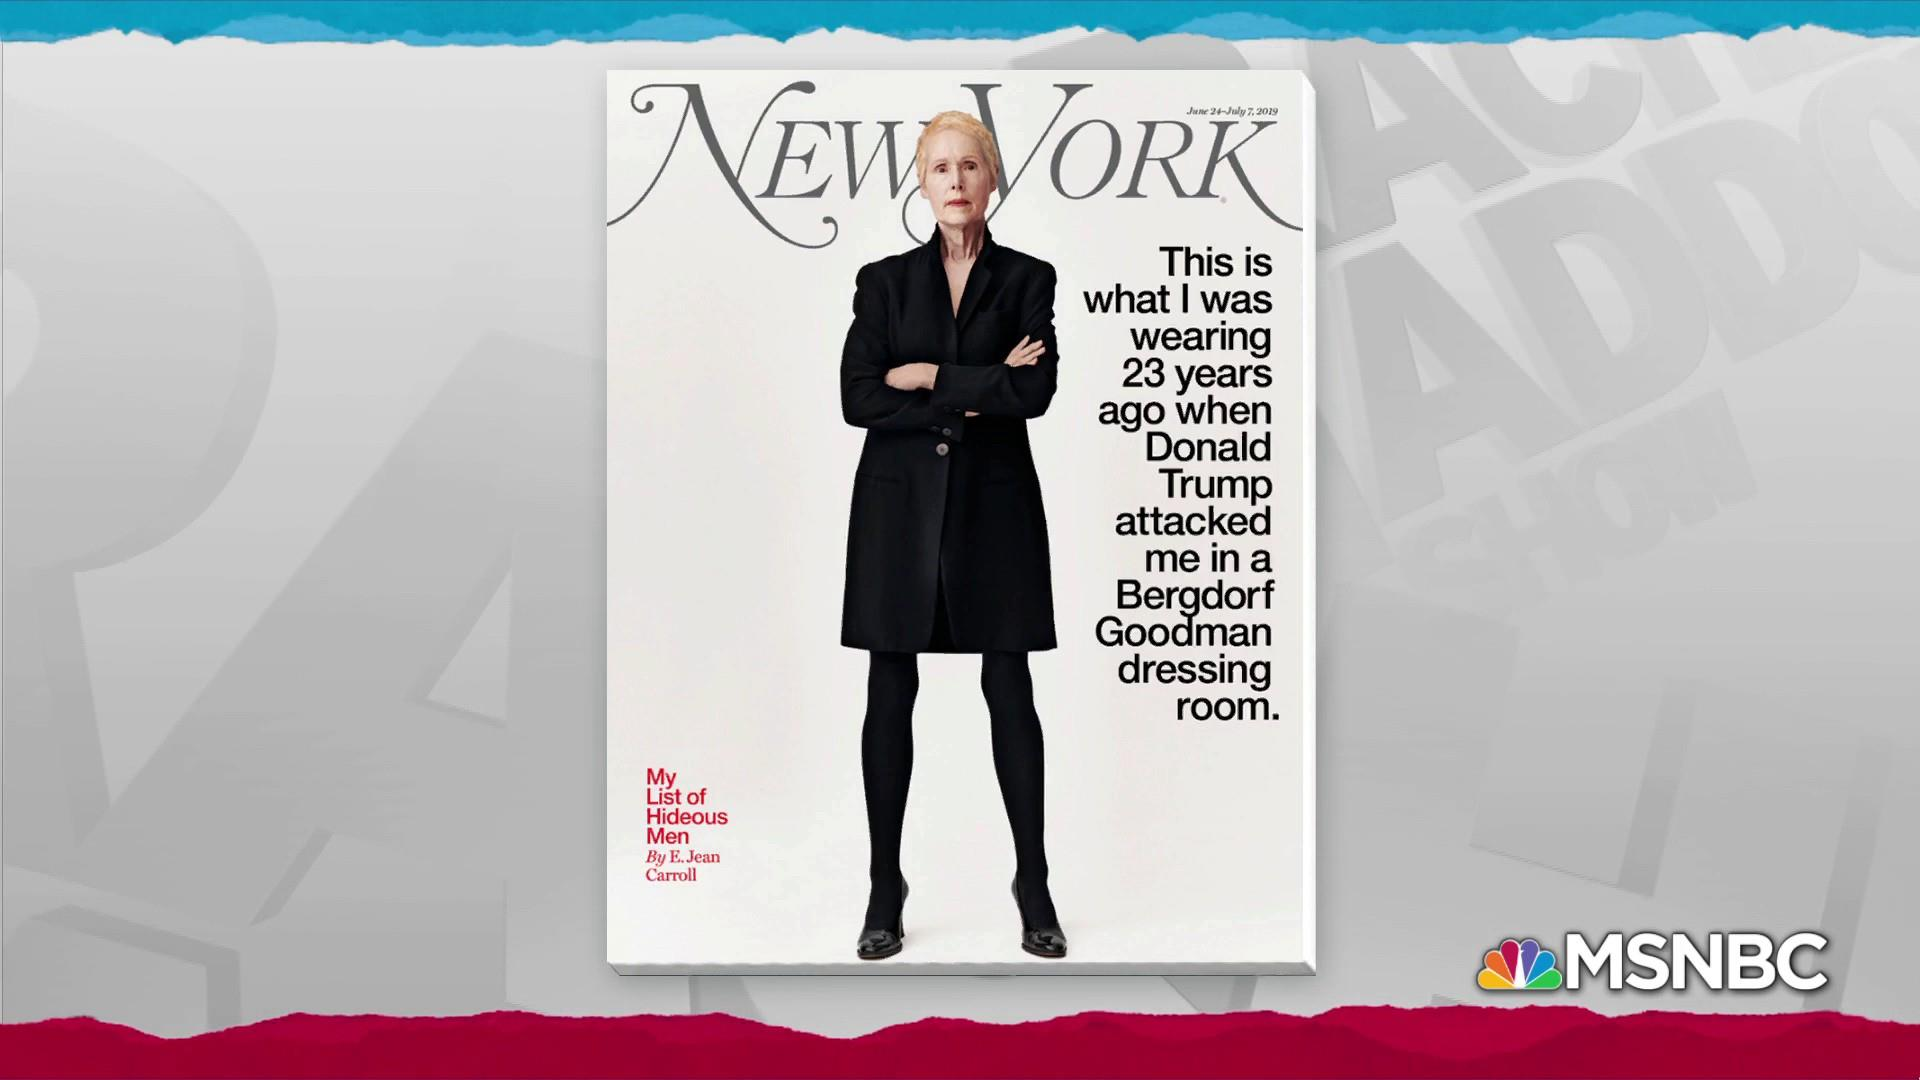 E. Jean Carroll alleges past sexual assault by Donald Trump